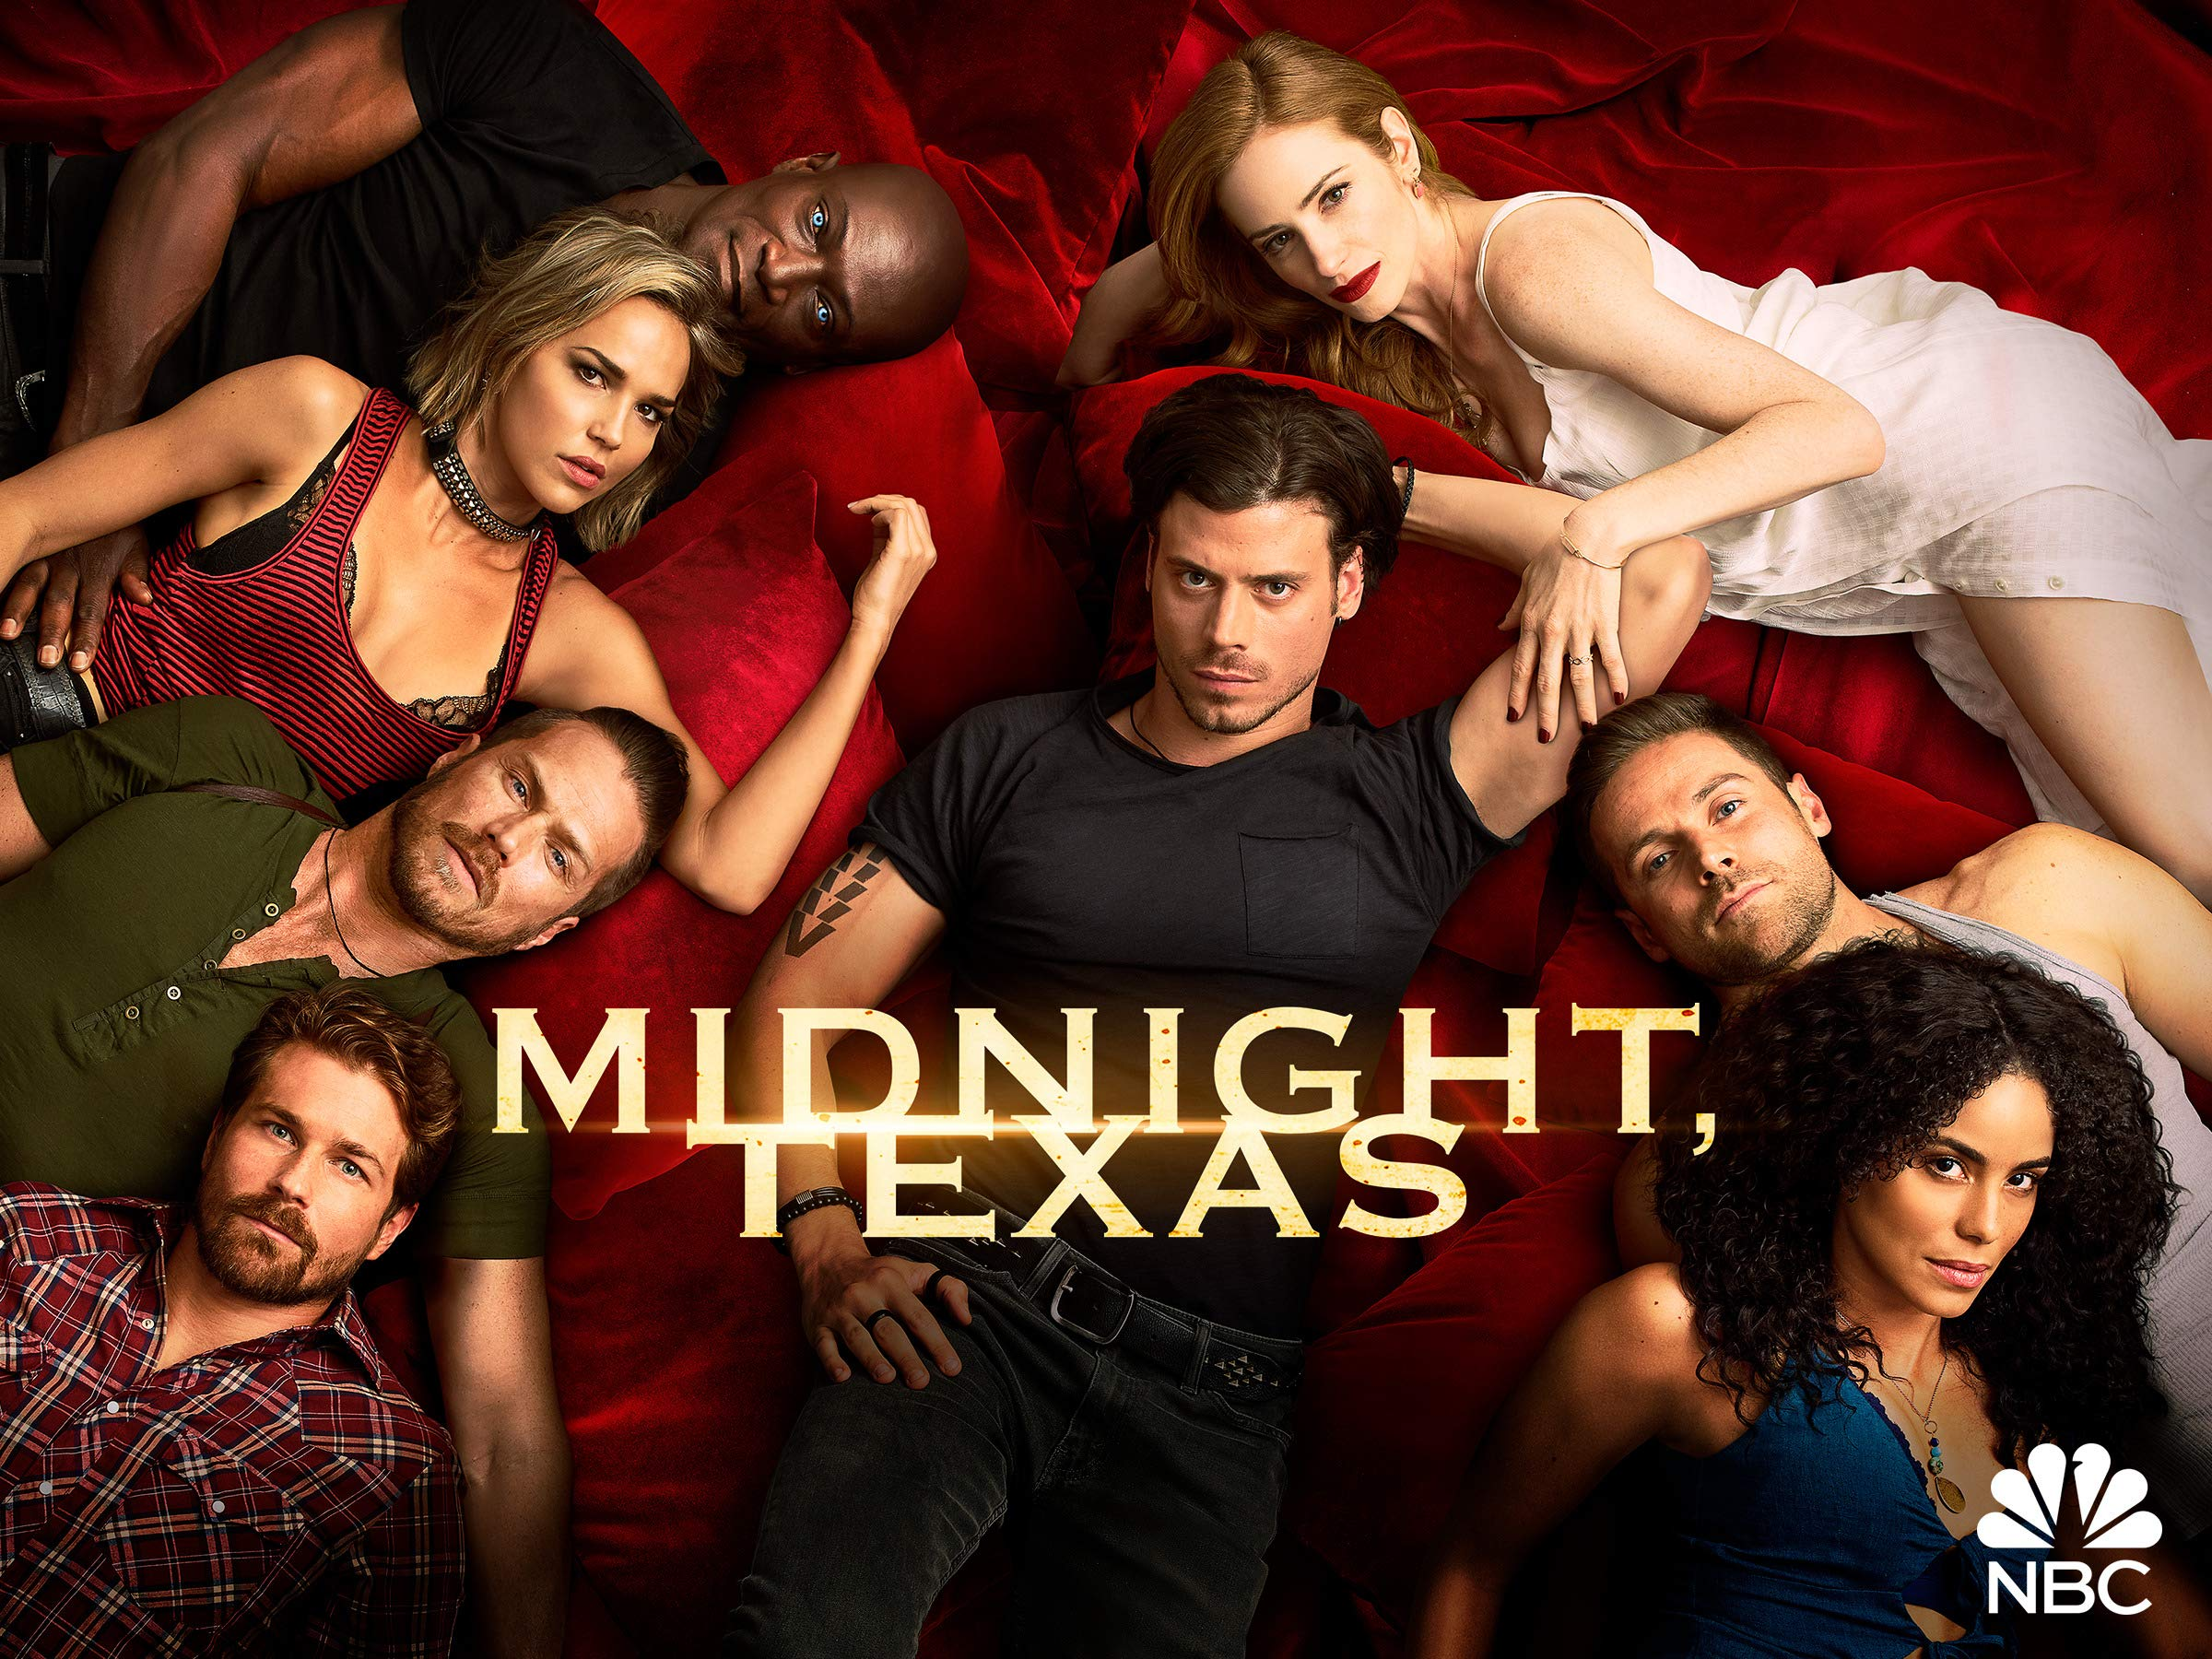 By Photo Congress || Midnight Texas Season 2 Episode 9 Download